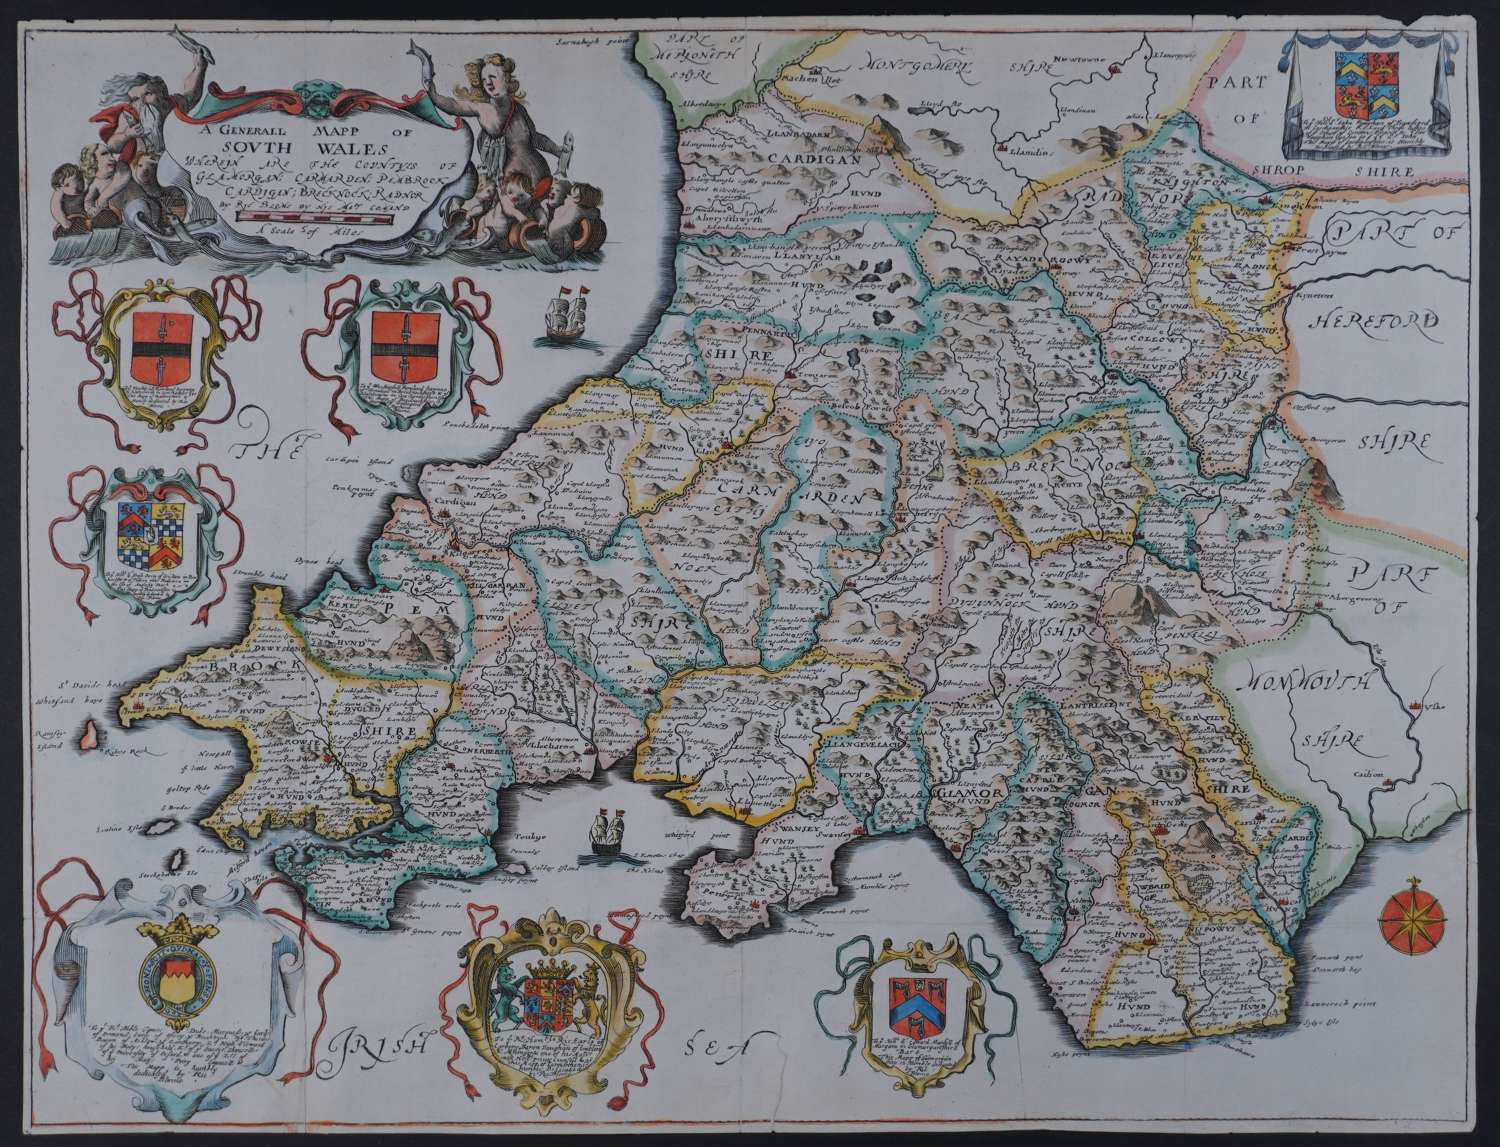 A Generall Mapp of South Wales by Richard Blome